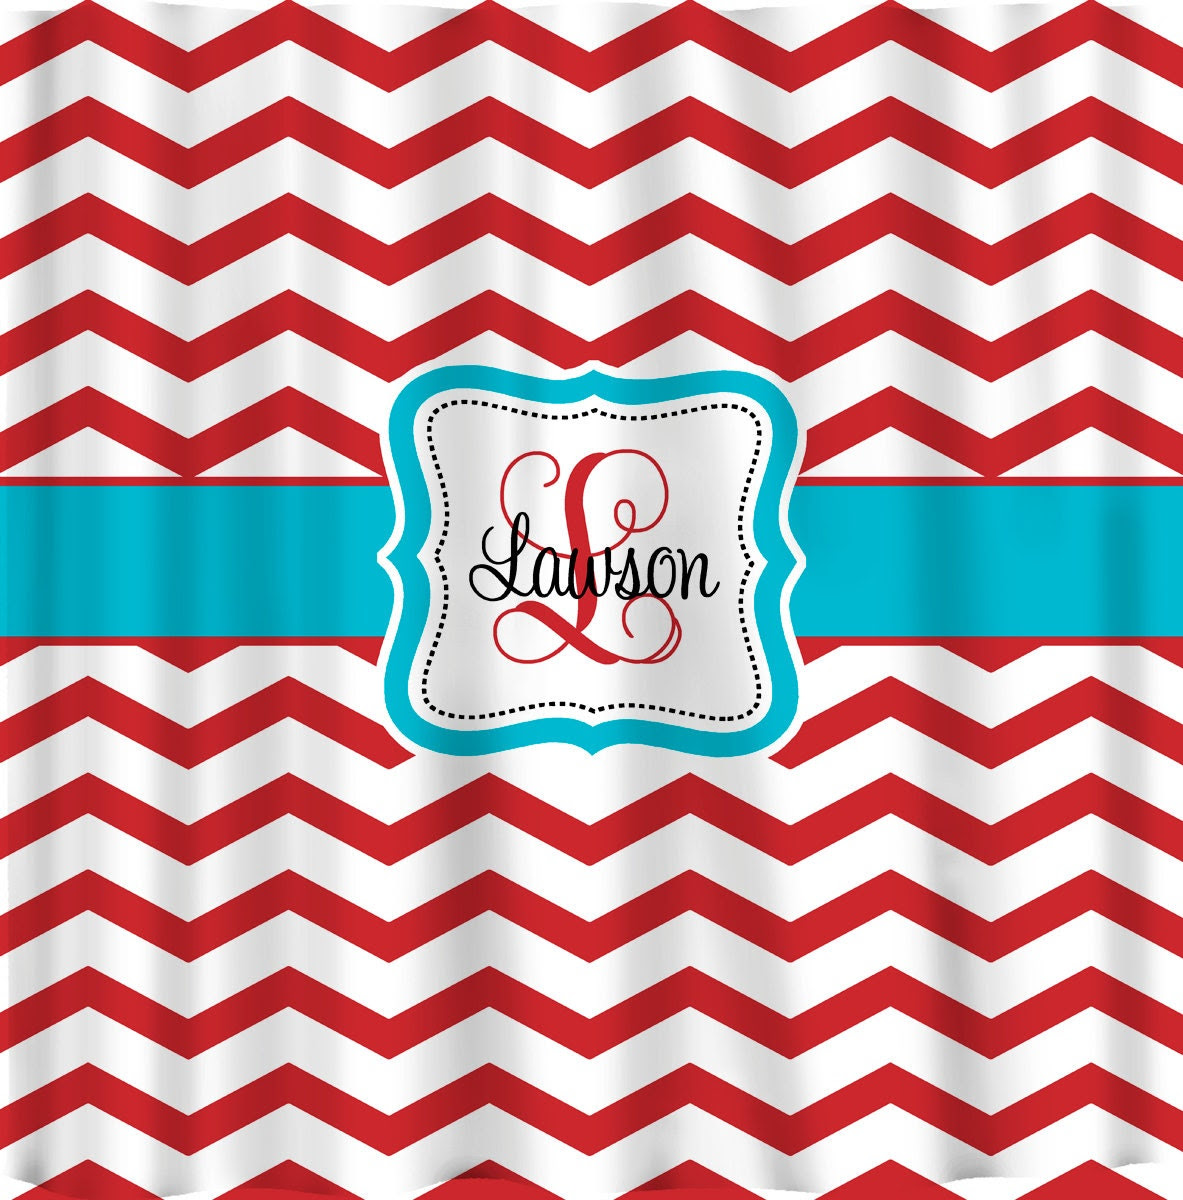 red and teal shower curtain. Personalized Shower Curtains Red and White Chevron by redbeauty And Curtain  Interior Home Design Decorating